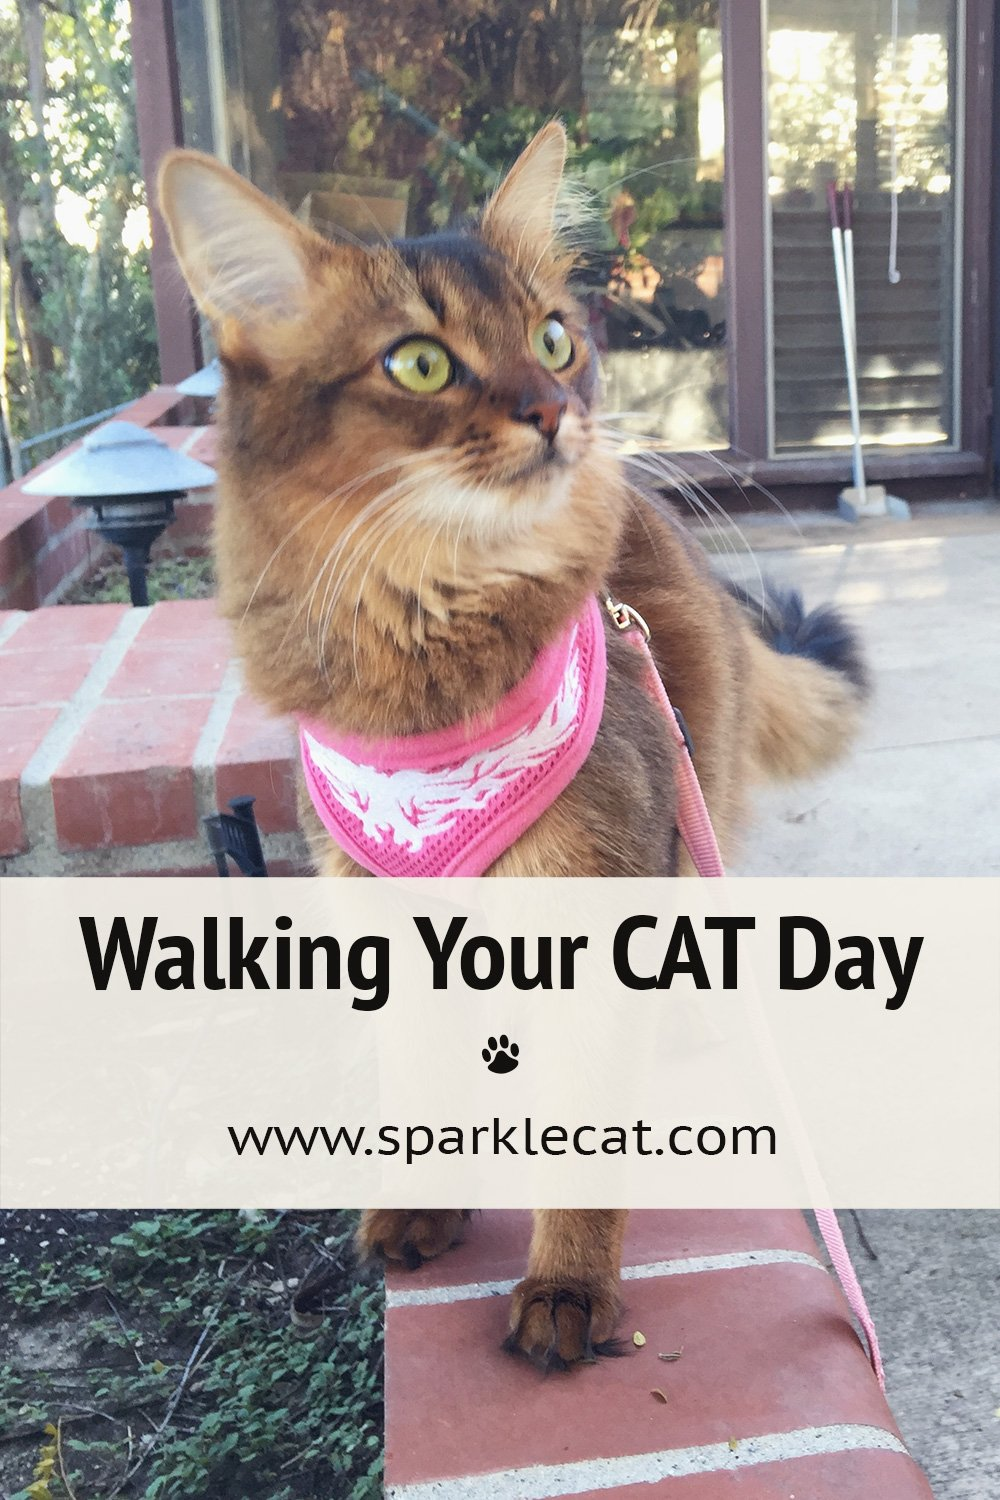 Walking Your CAT Day!